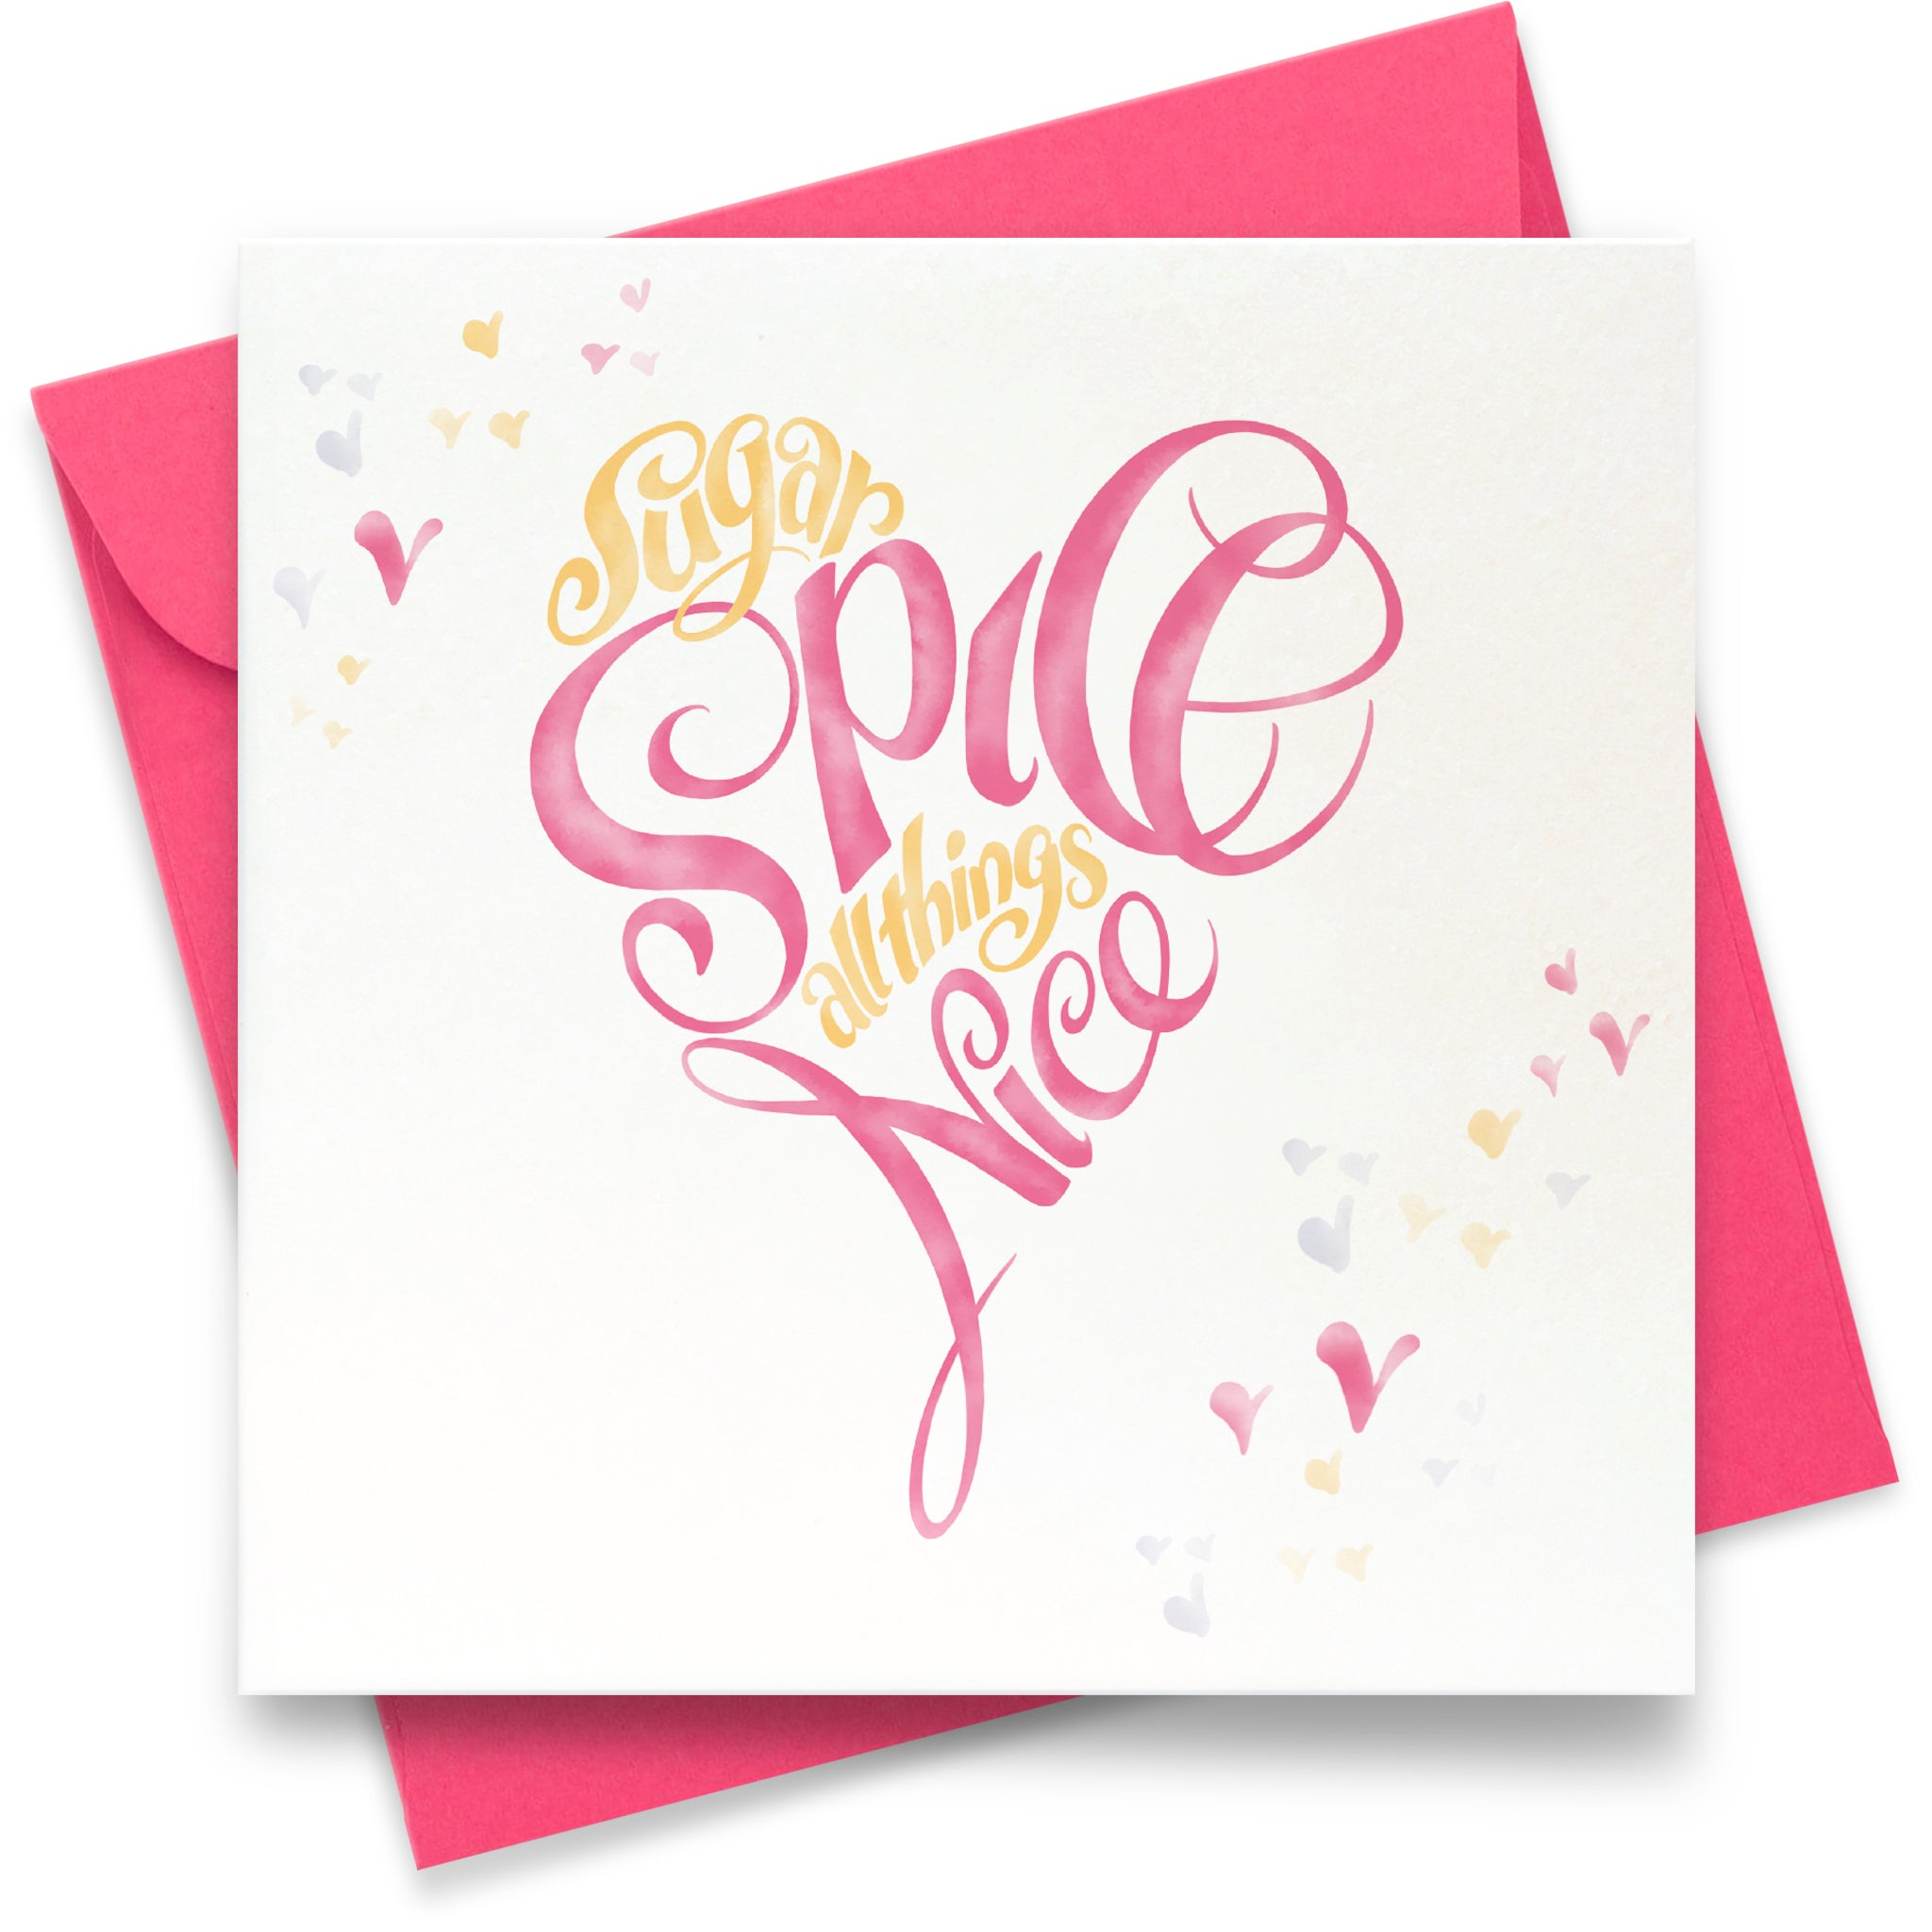 Sugar and Spice: Greeting Card